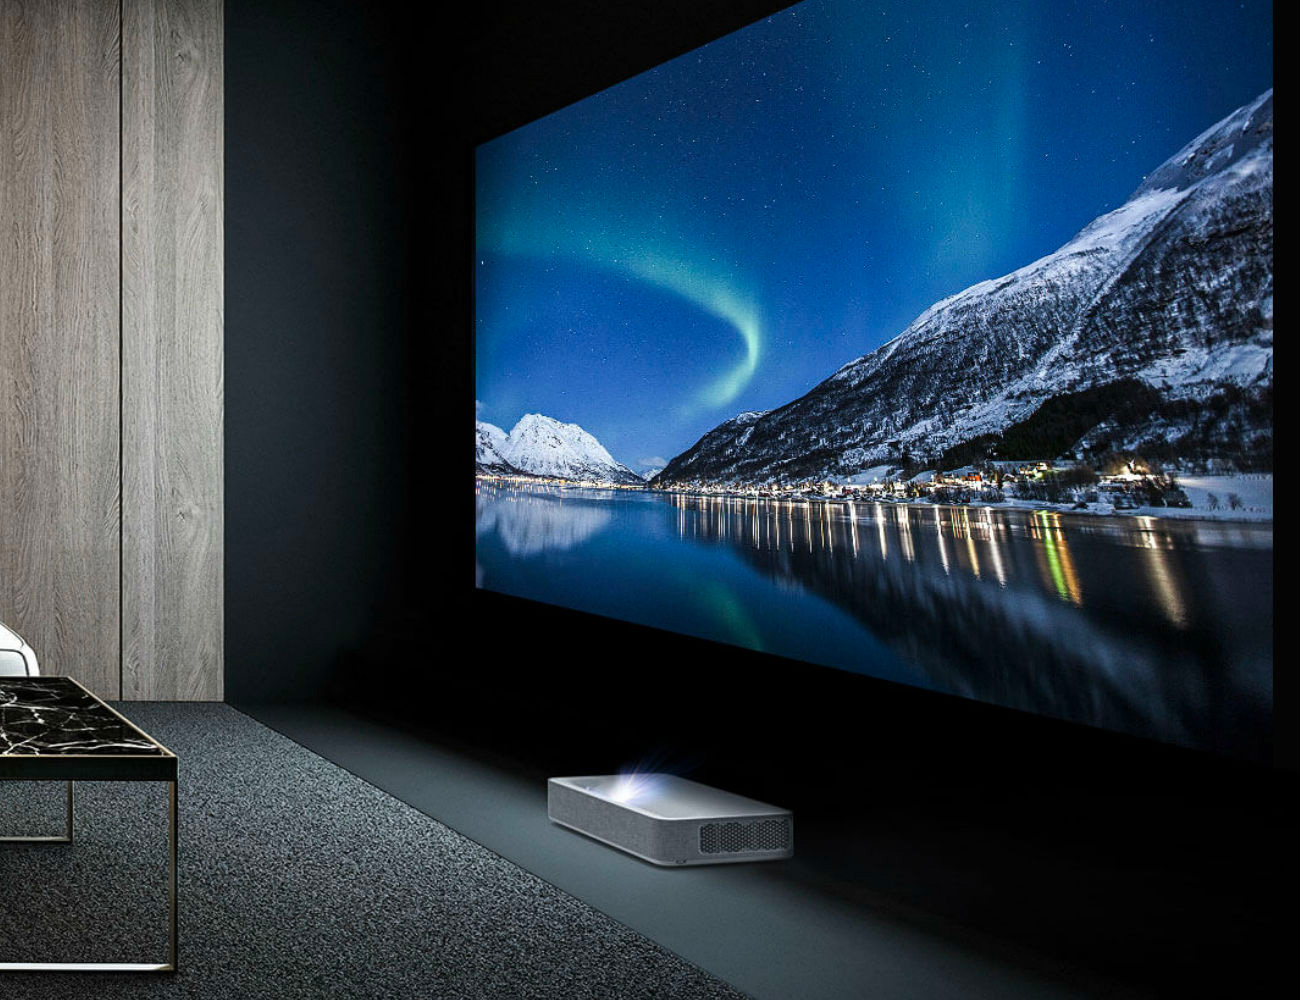 This Short Throw 4K Projector Creates a Huge Hi-Def Display at werd.com